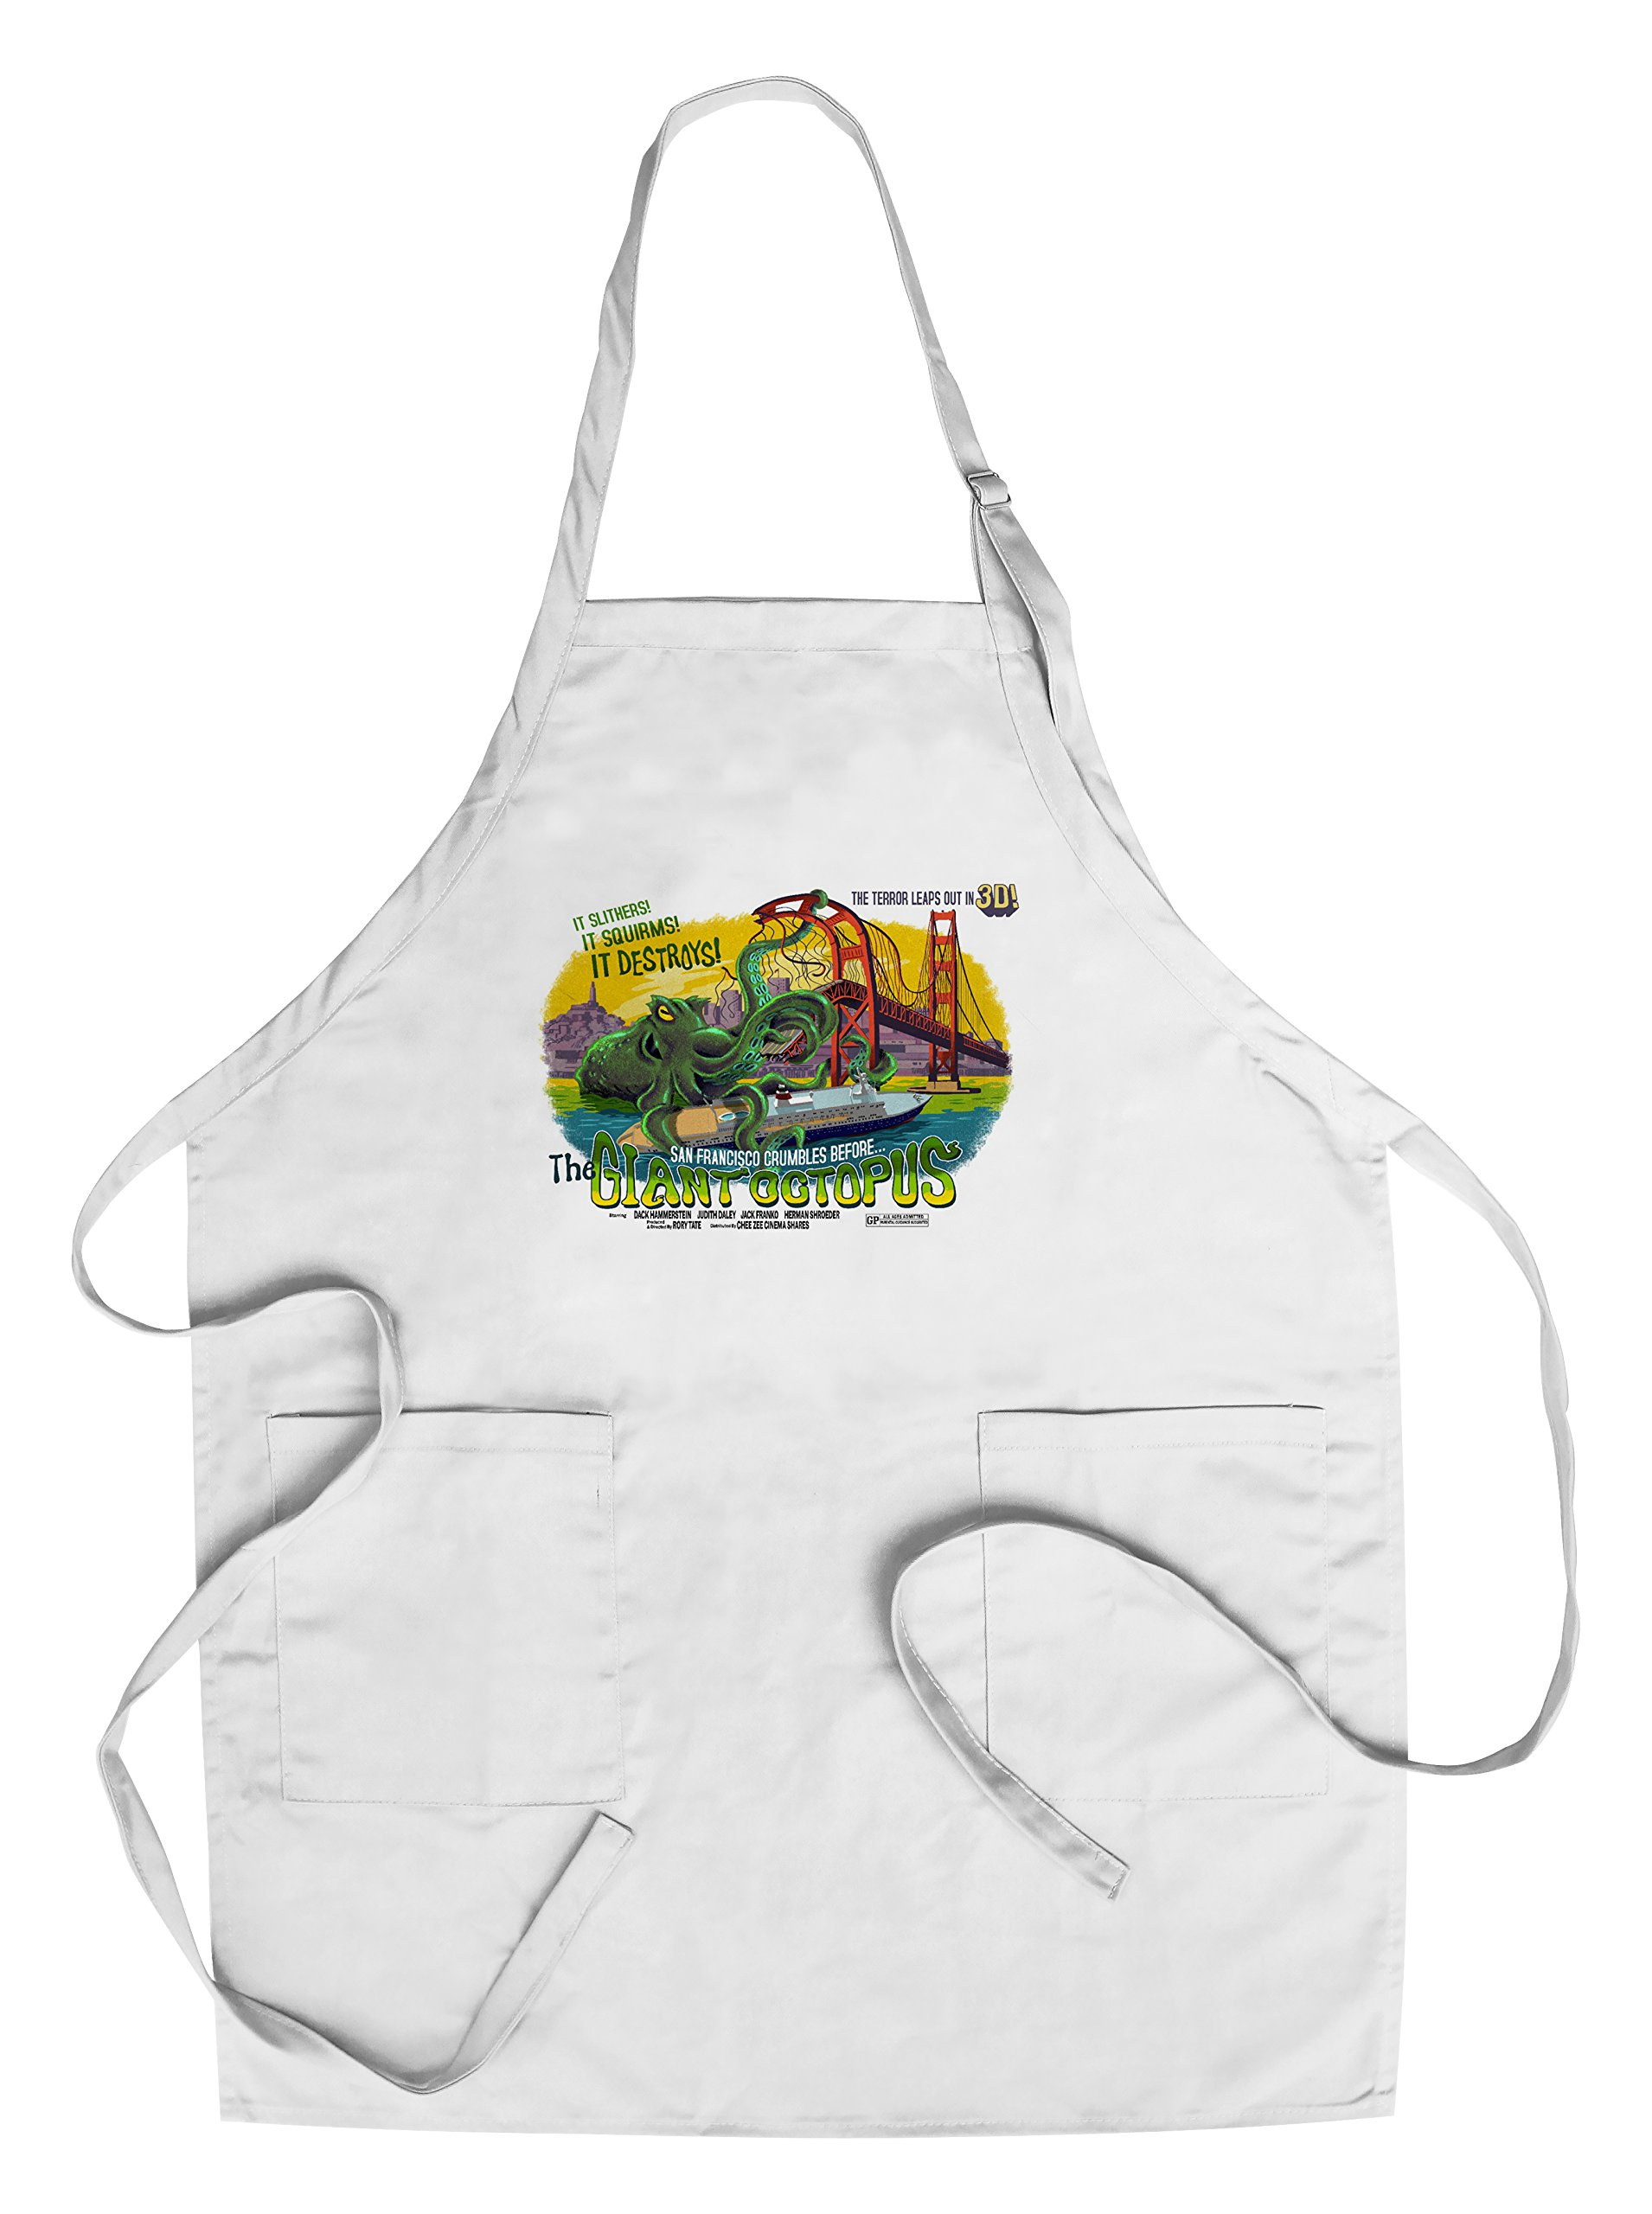 San Francisco, California - The Giant Octopus - B Movie Poster (Cotton/Polyester Chef's Apron)